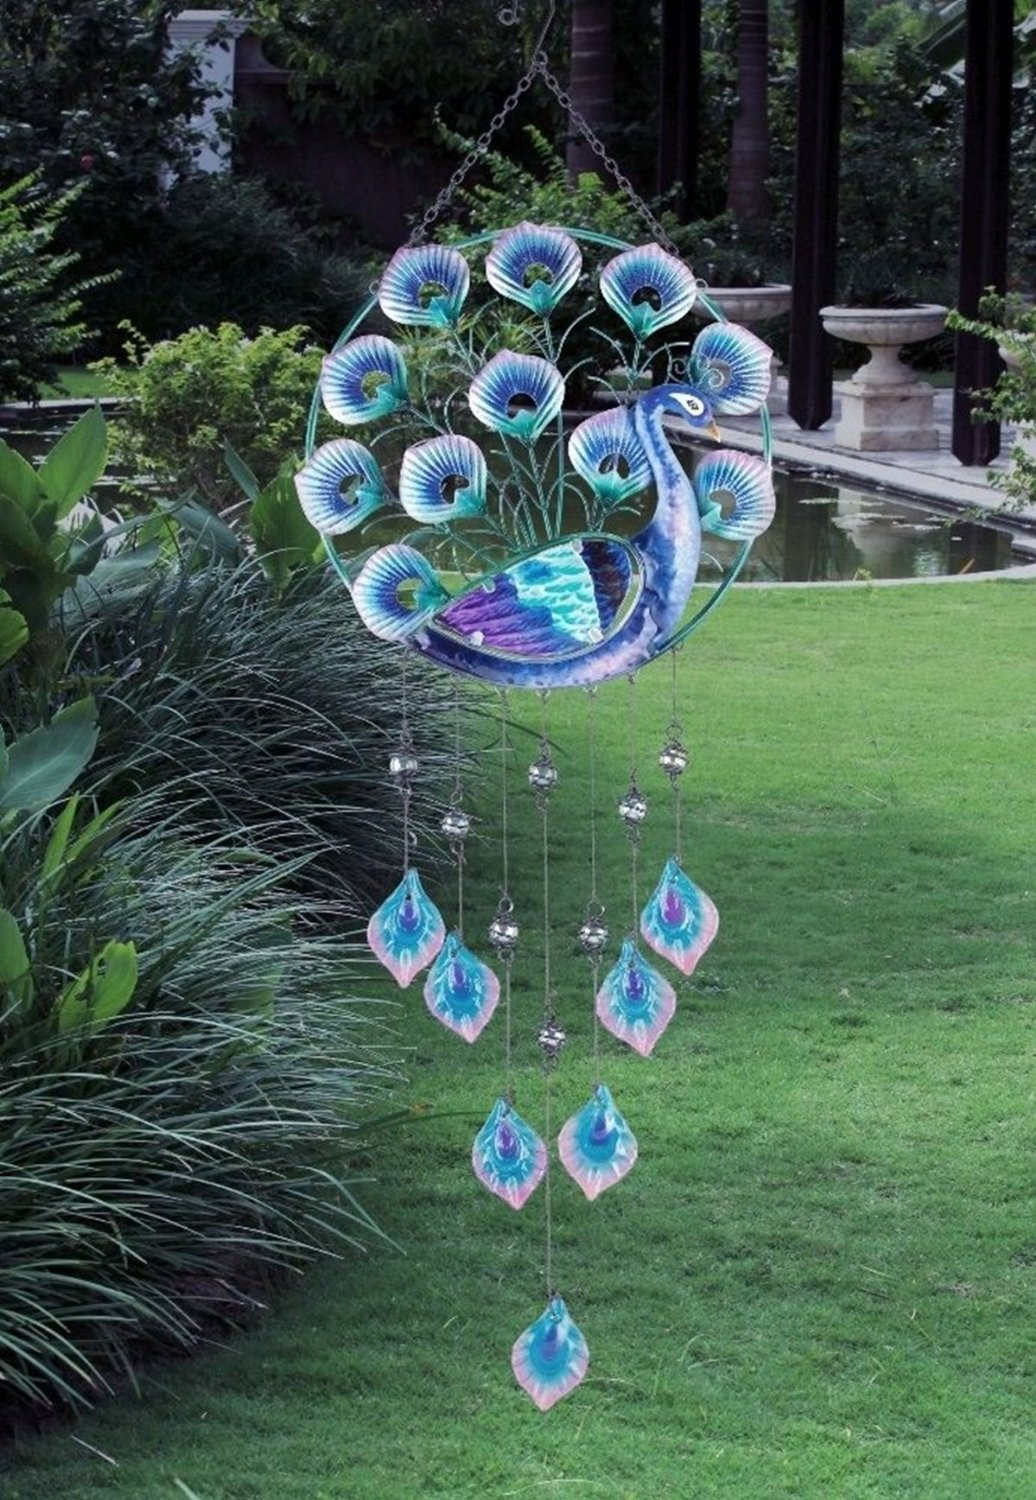 Get Quotations · CHSGJY Peacock Wind Chime Glass U0026 Metal Bird Wall Hanging  Garden Patio Porch Decor